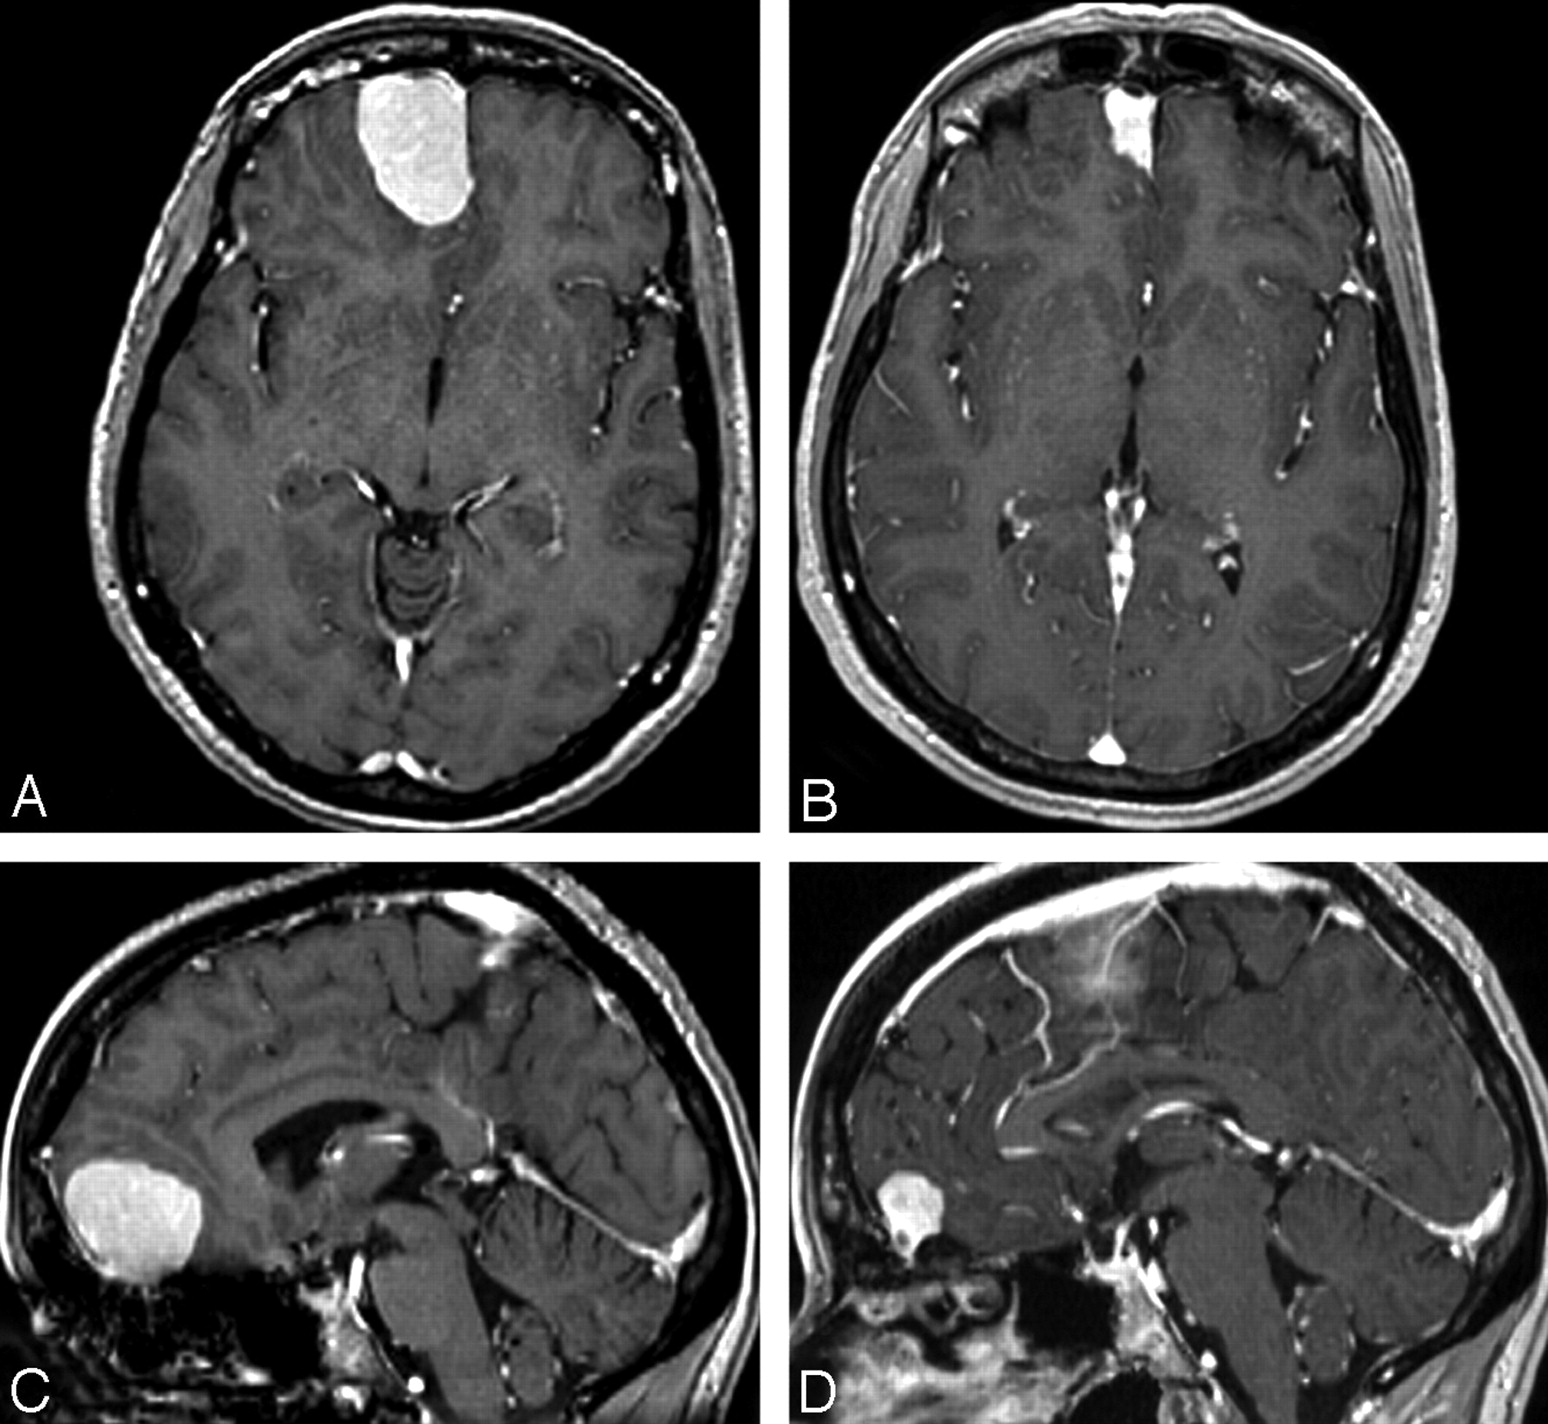 abrupt regression of a meningioma after discontinuation of